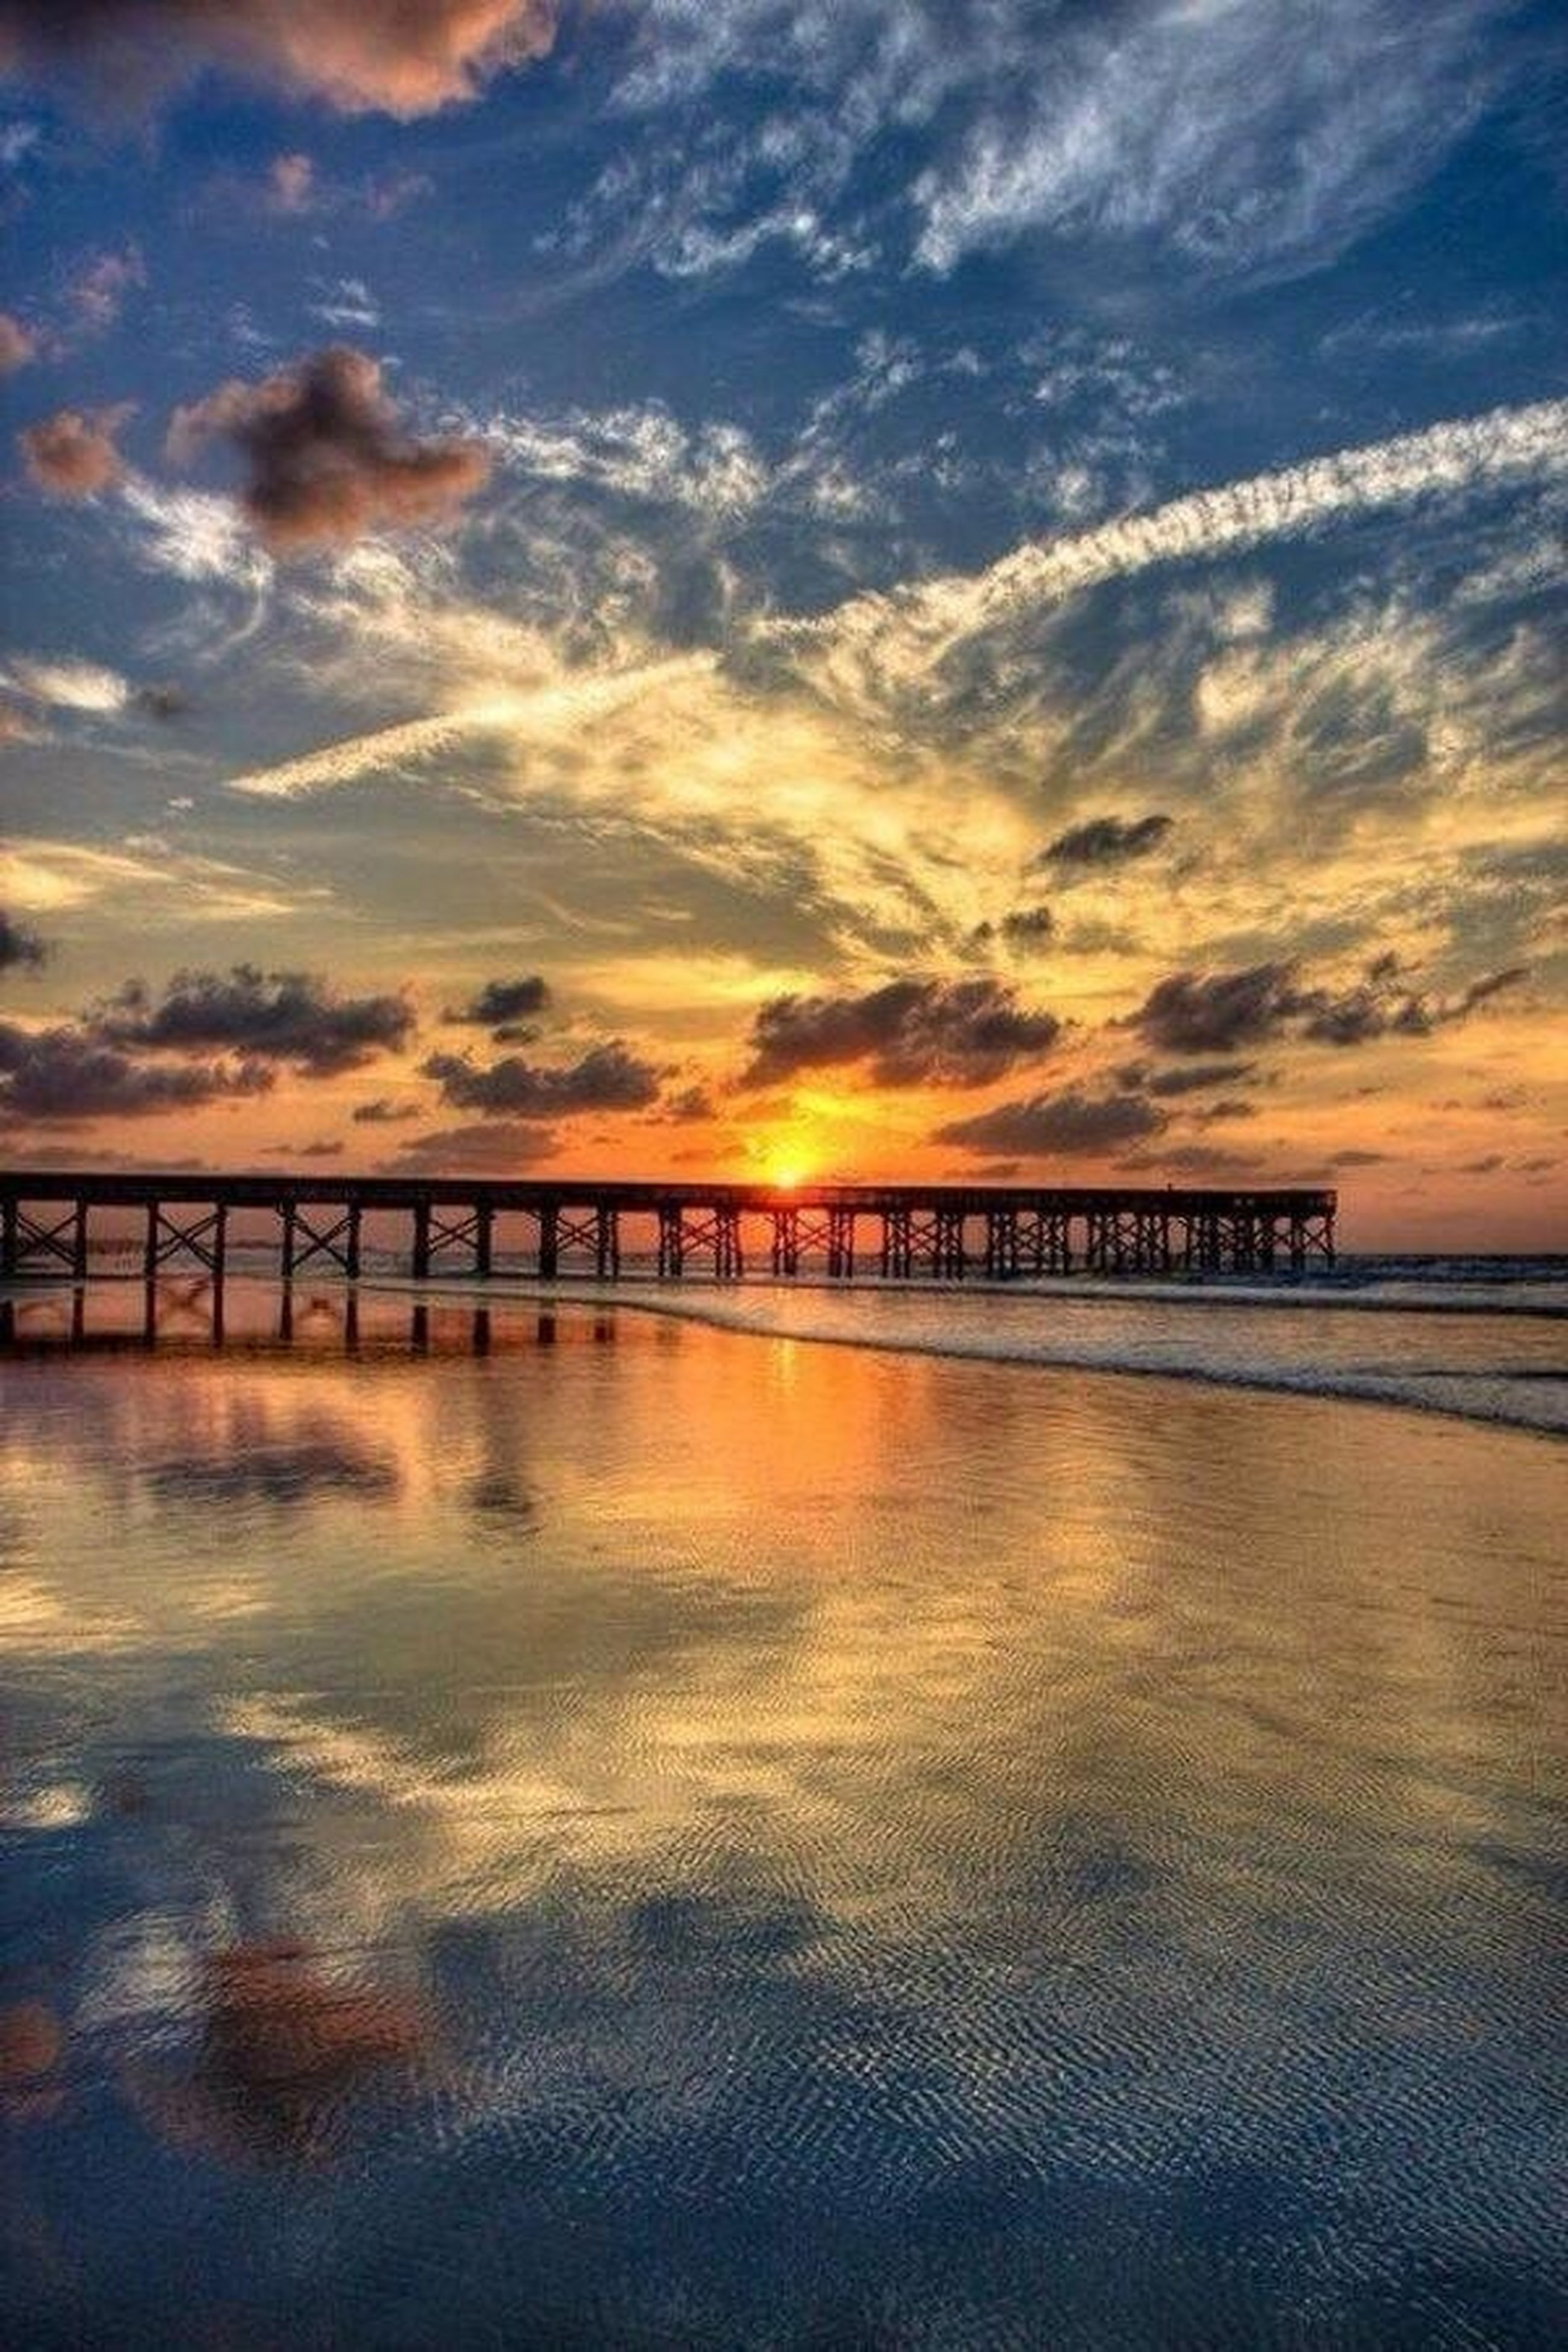 sunset, water, sky, sea, tranquility, tranquil scene, scenics, cloud - sky, beauty in nature, pier, nature, orange color, idyllic, built structure, cloud, reflection, waterfront, horizon over water, cloudy, railing